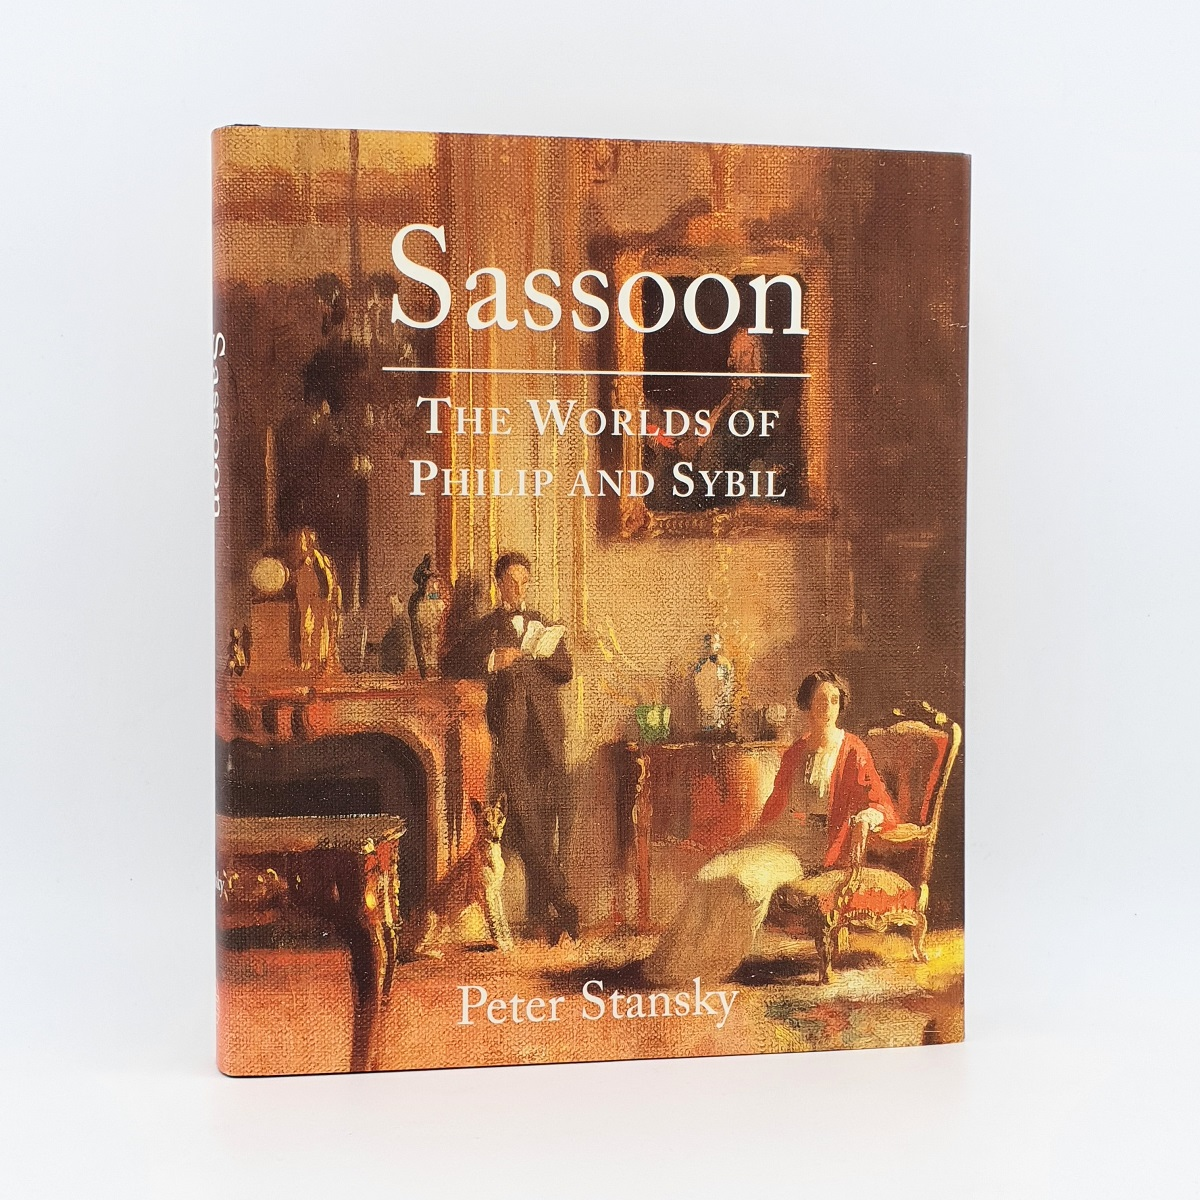 Sassoon. The Worlds of Philip and Sybil